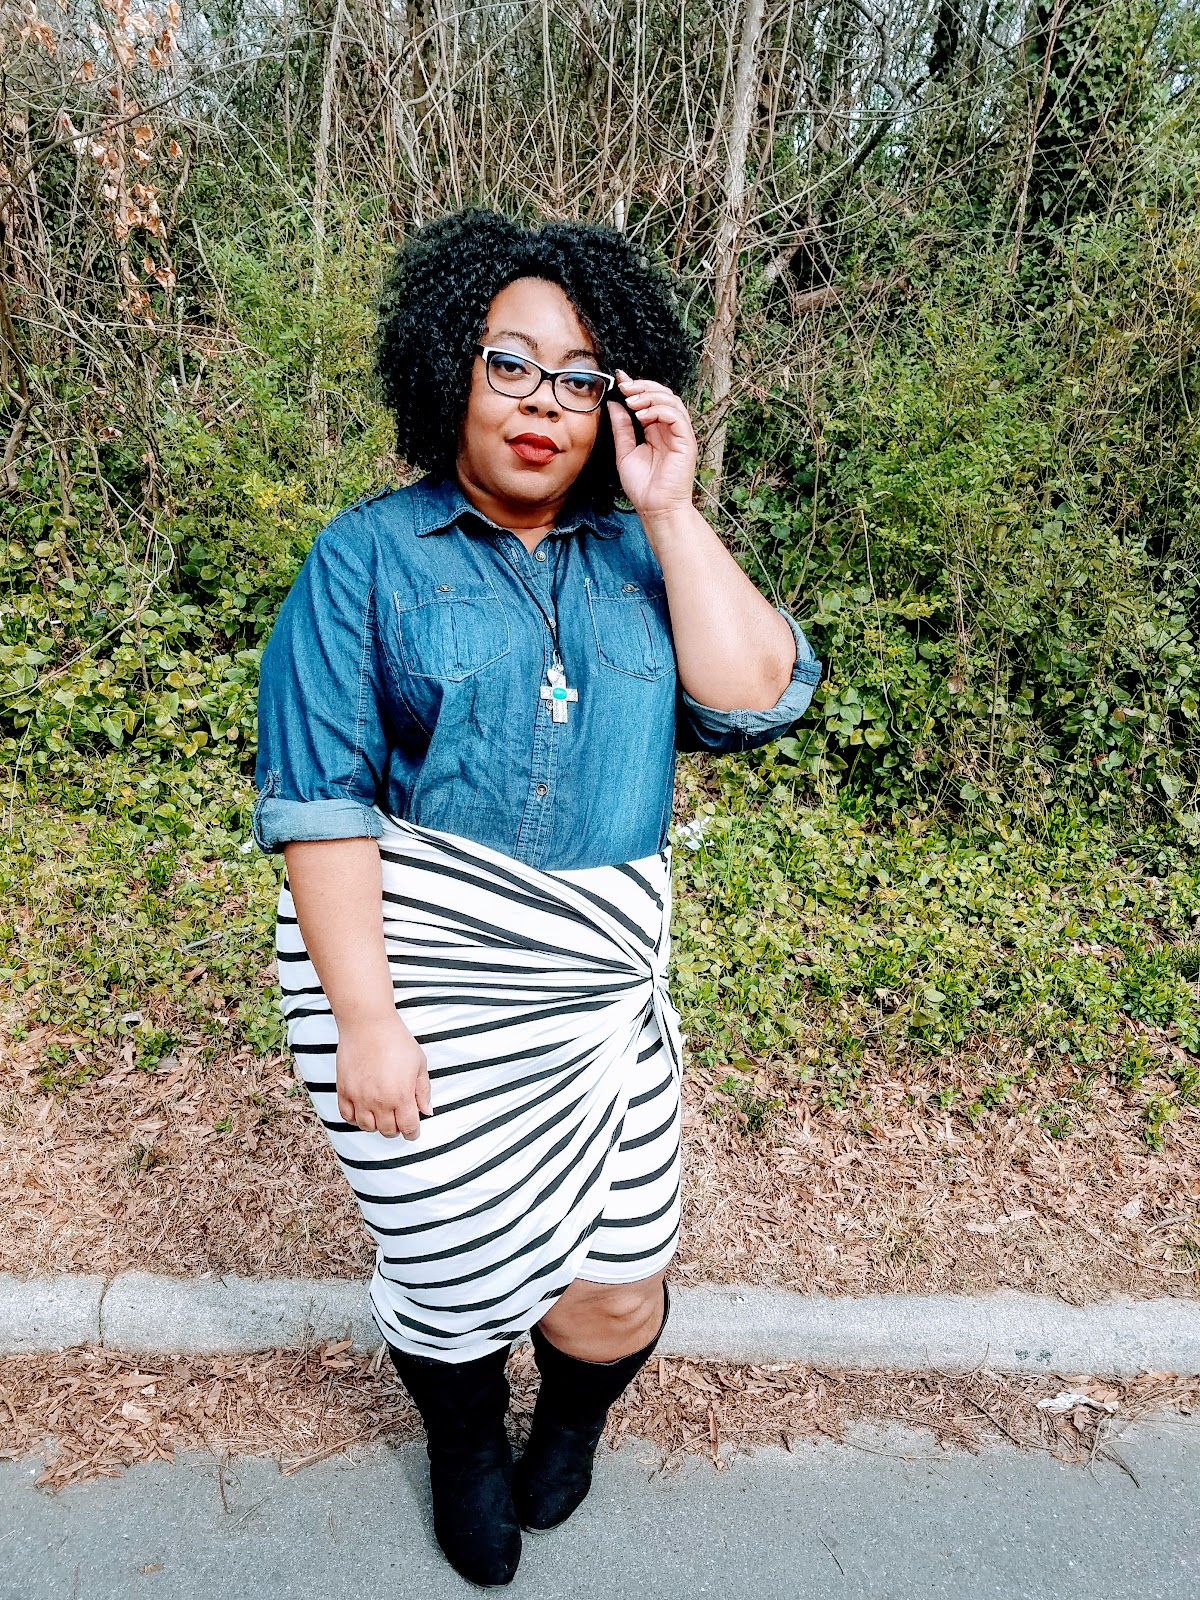 curvy girl, bbw, fashion blogger, stripes, denim, boots, natural hair, matte lips, thick thighs, geeky specs